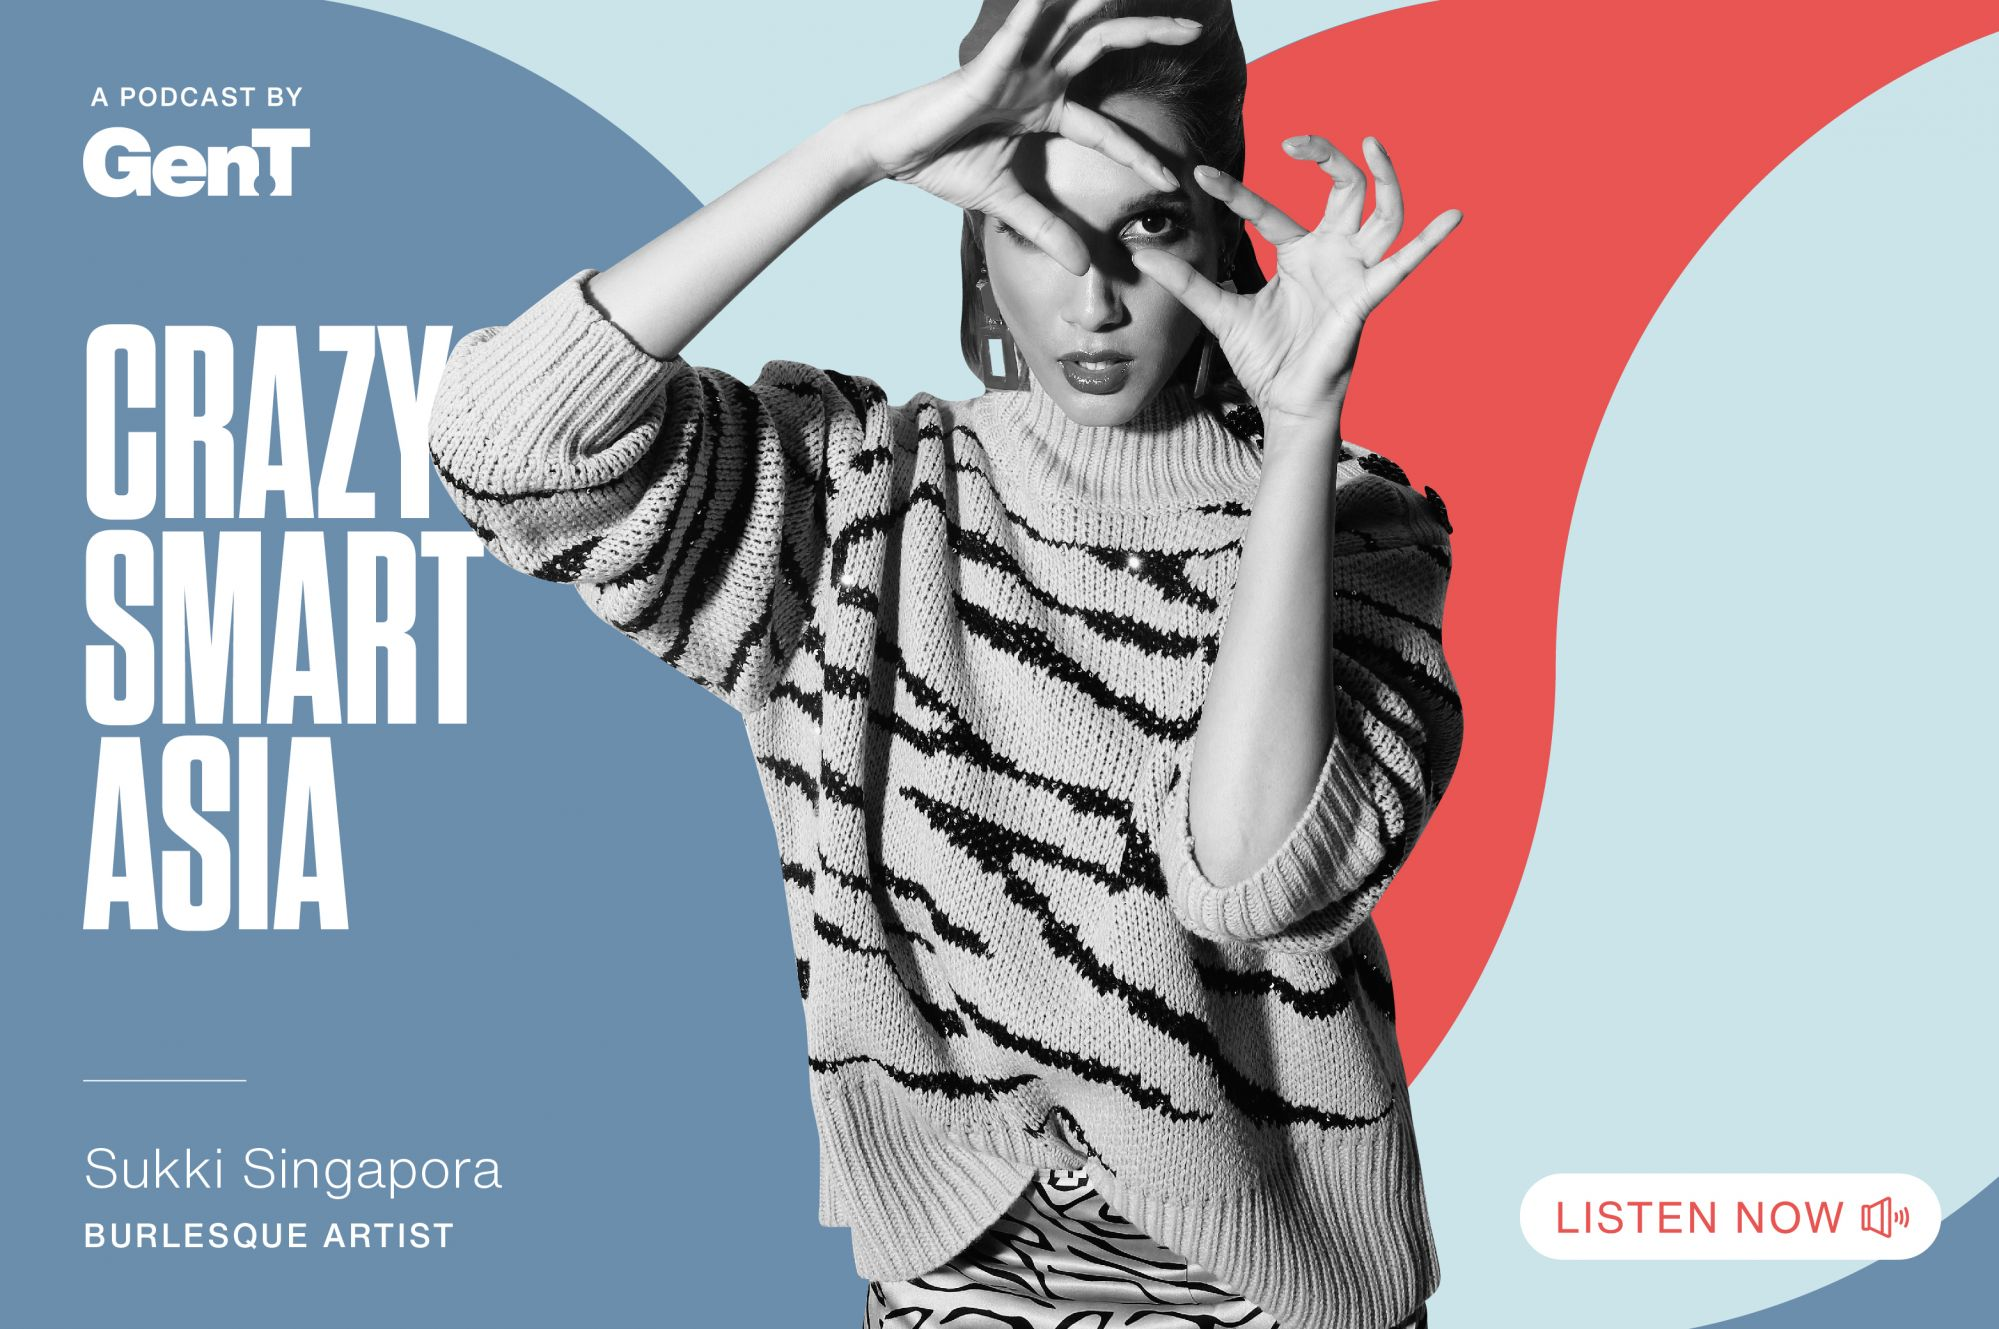 Generation T Launches The Crazy Smart Asia Podcast, Featuring Singaporean Burlesque Artist Sukki Singapora